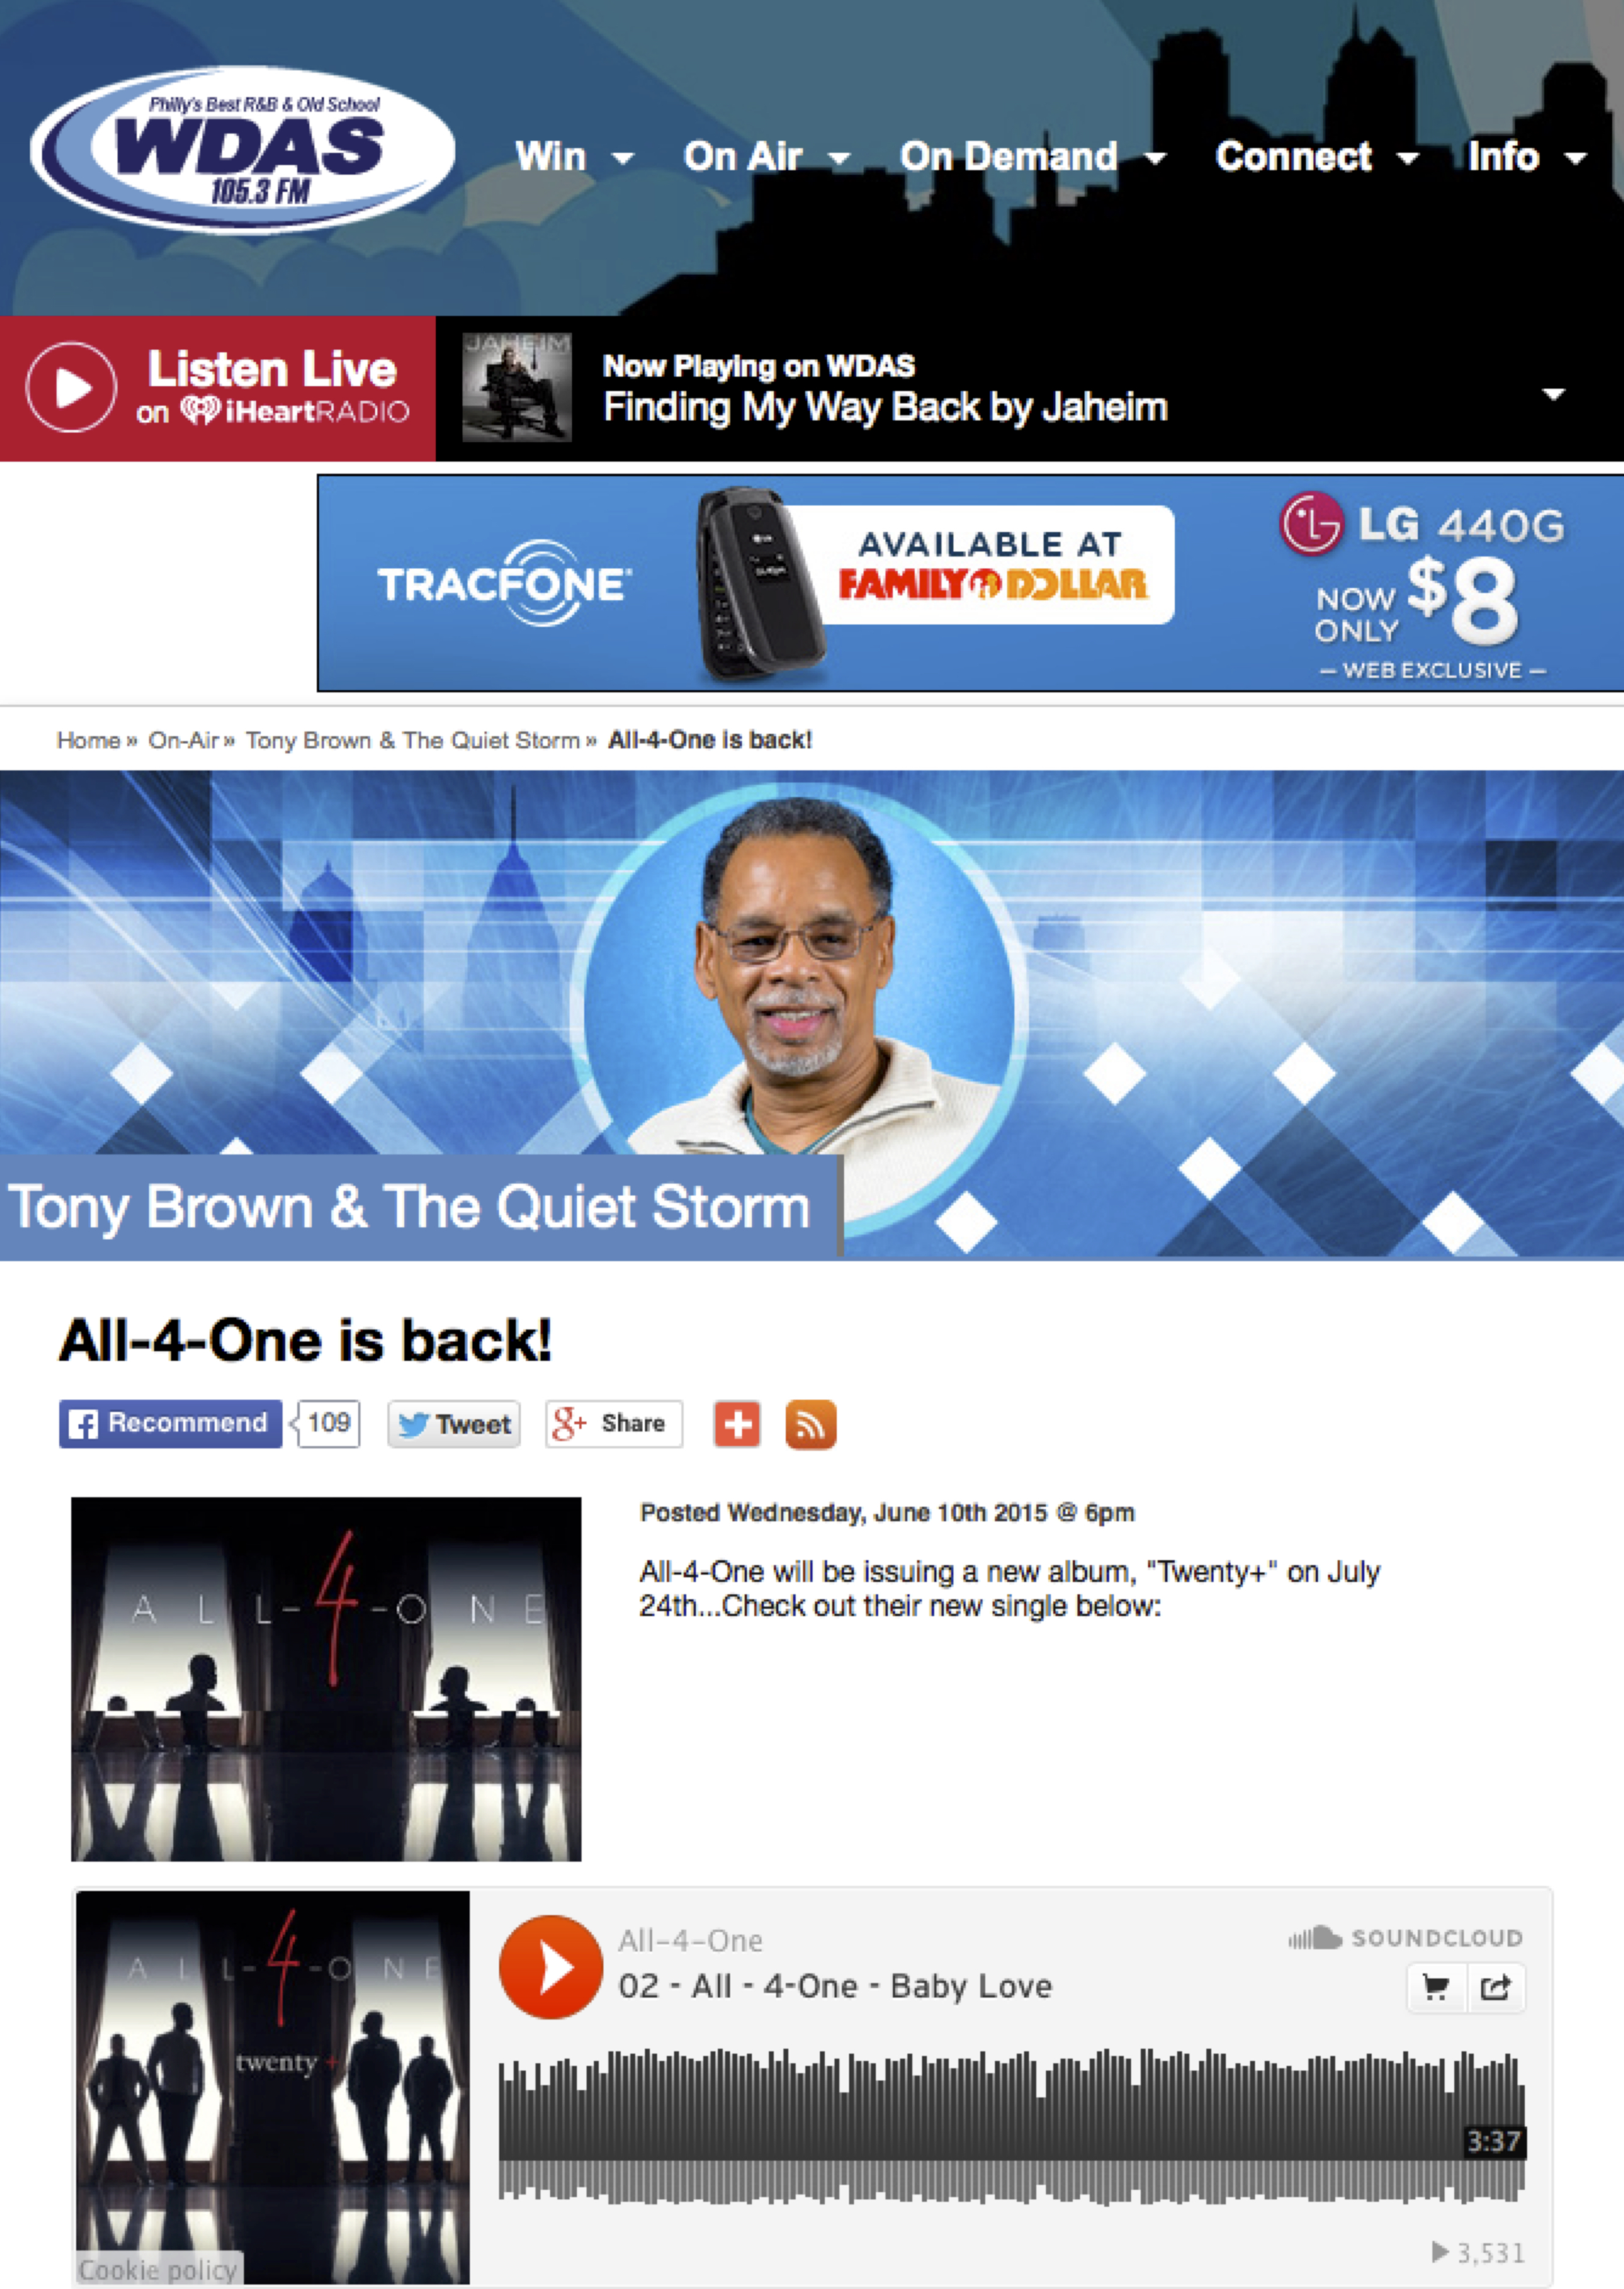 CLICK ON THE ABOVE IMAGE TO ENTER ARTICLE ON WDAS FM